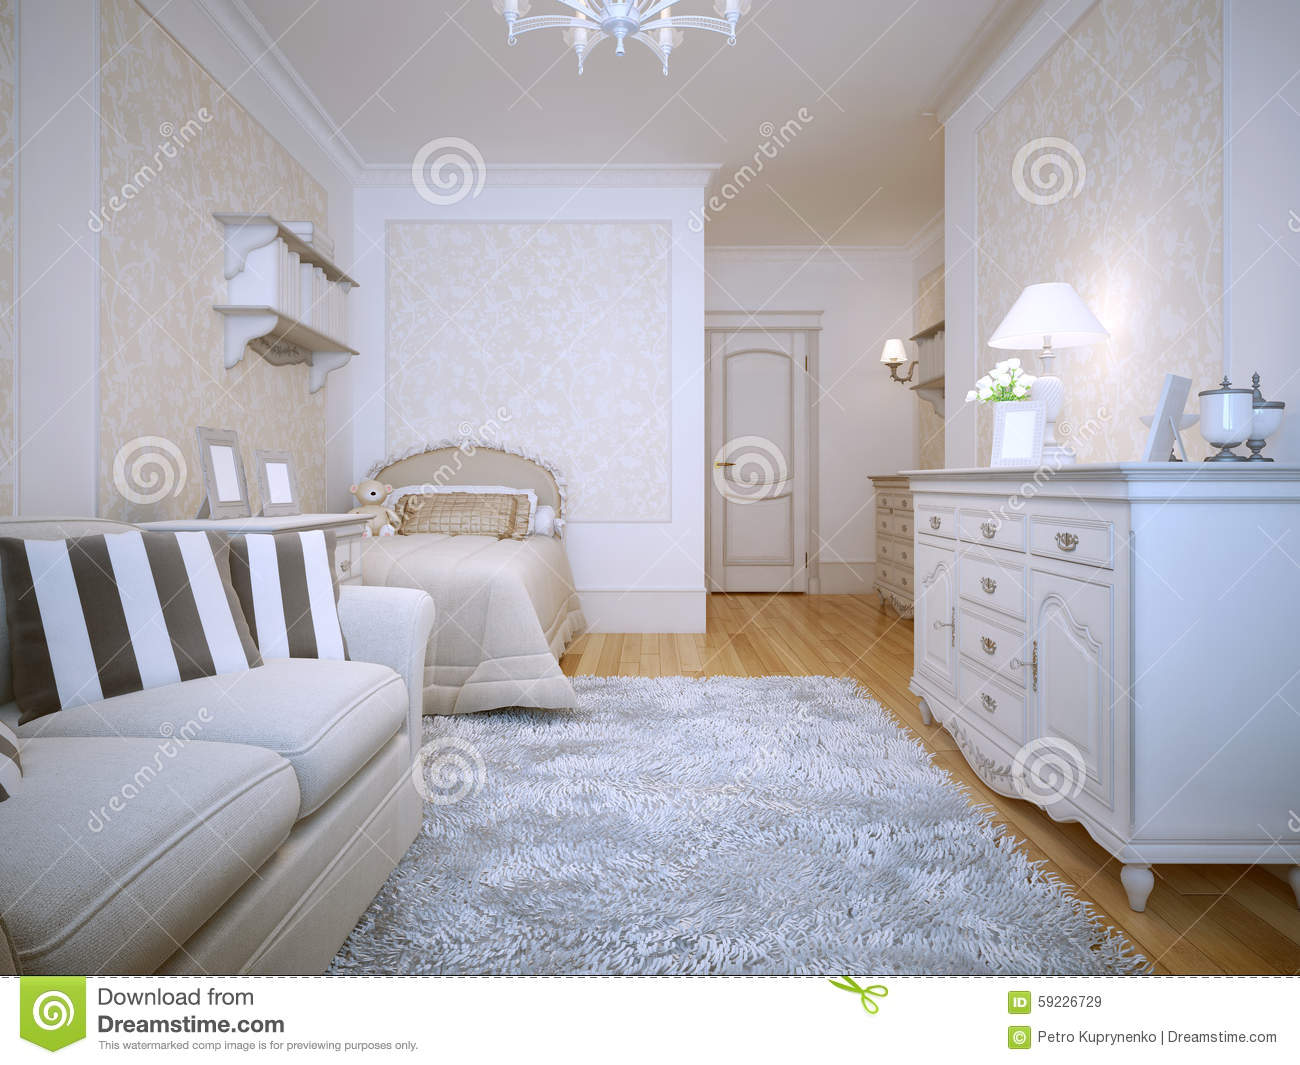 Camere Da Letto Stile Provenzale Foto. Beautiful With Camere Da ...